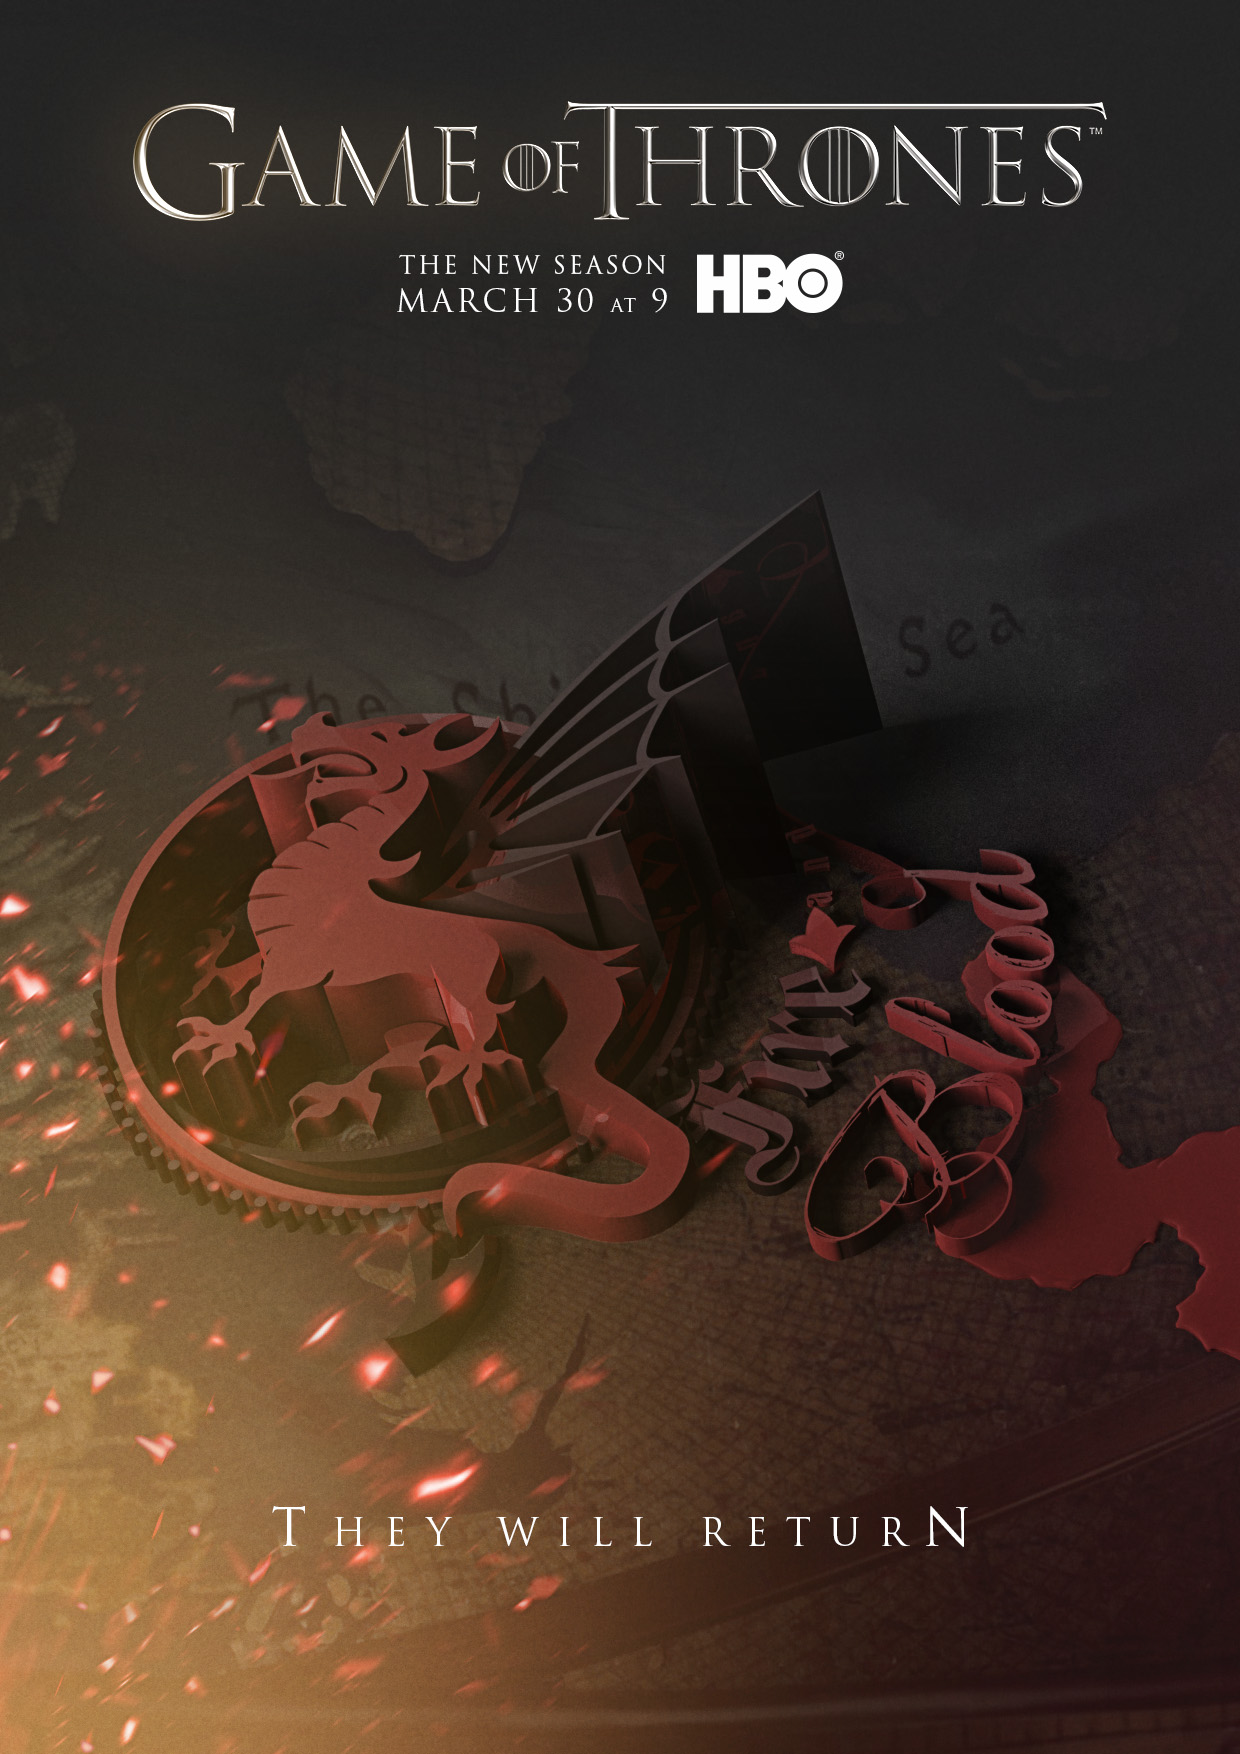 Game Of Thrones - Season 4 - Poster - Game of Thrones Fan ...